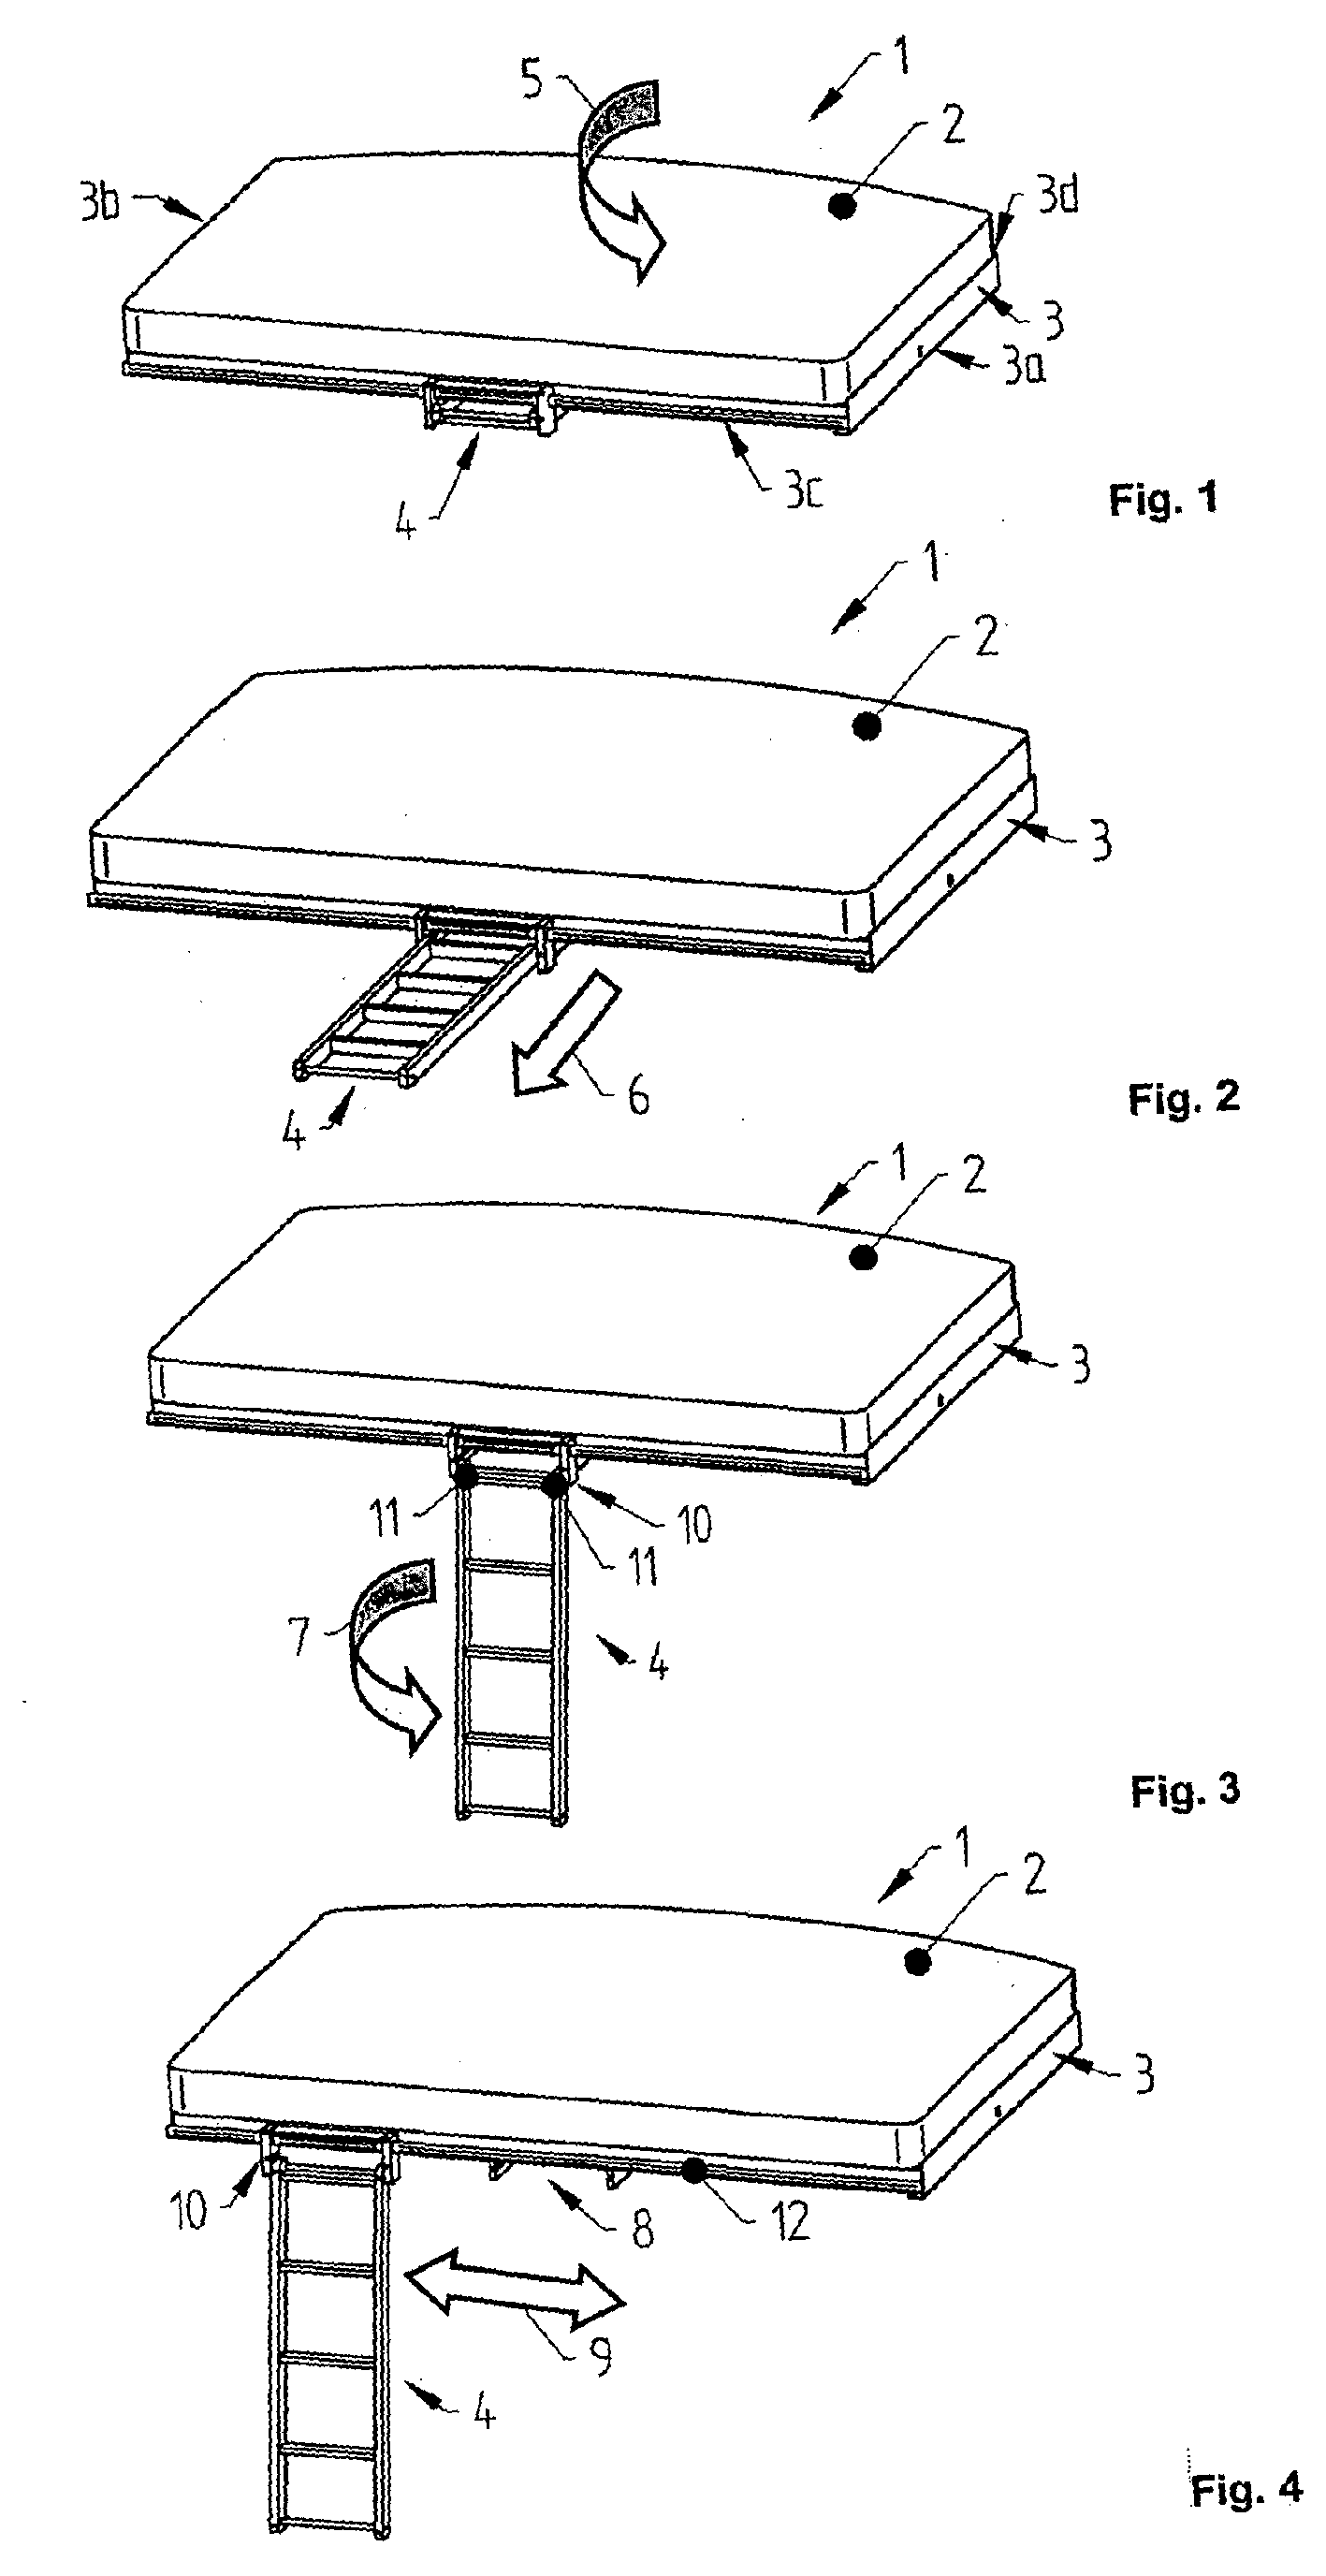 Patent EP1842720A2 - Bunk bed ladder for vehicles - Google Patents